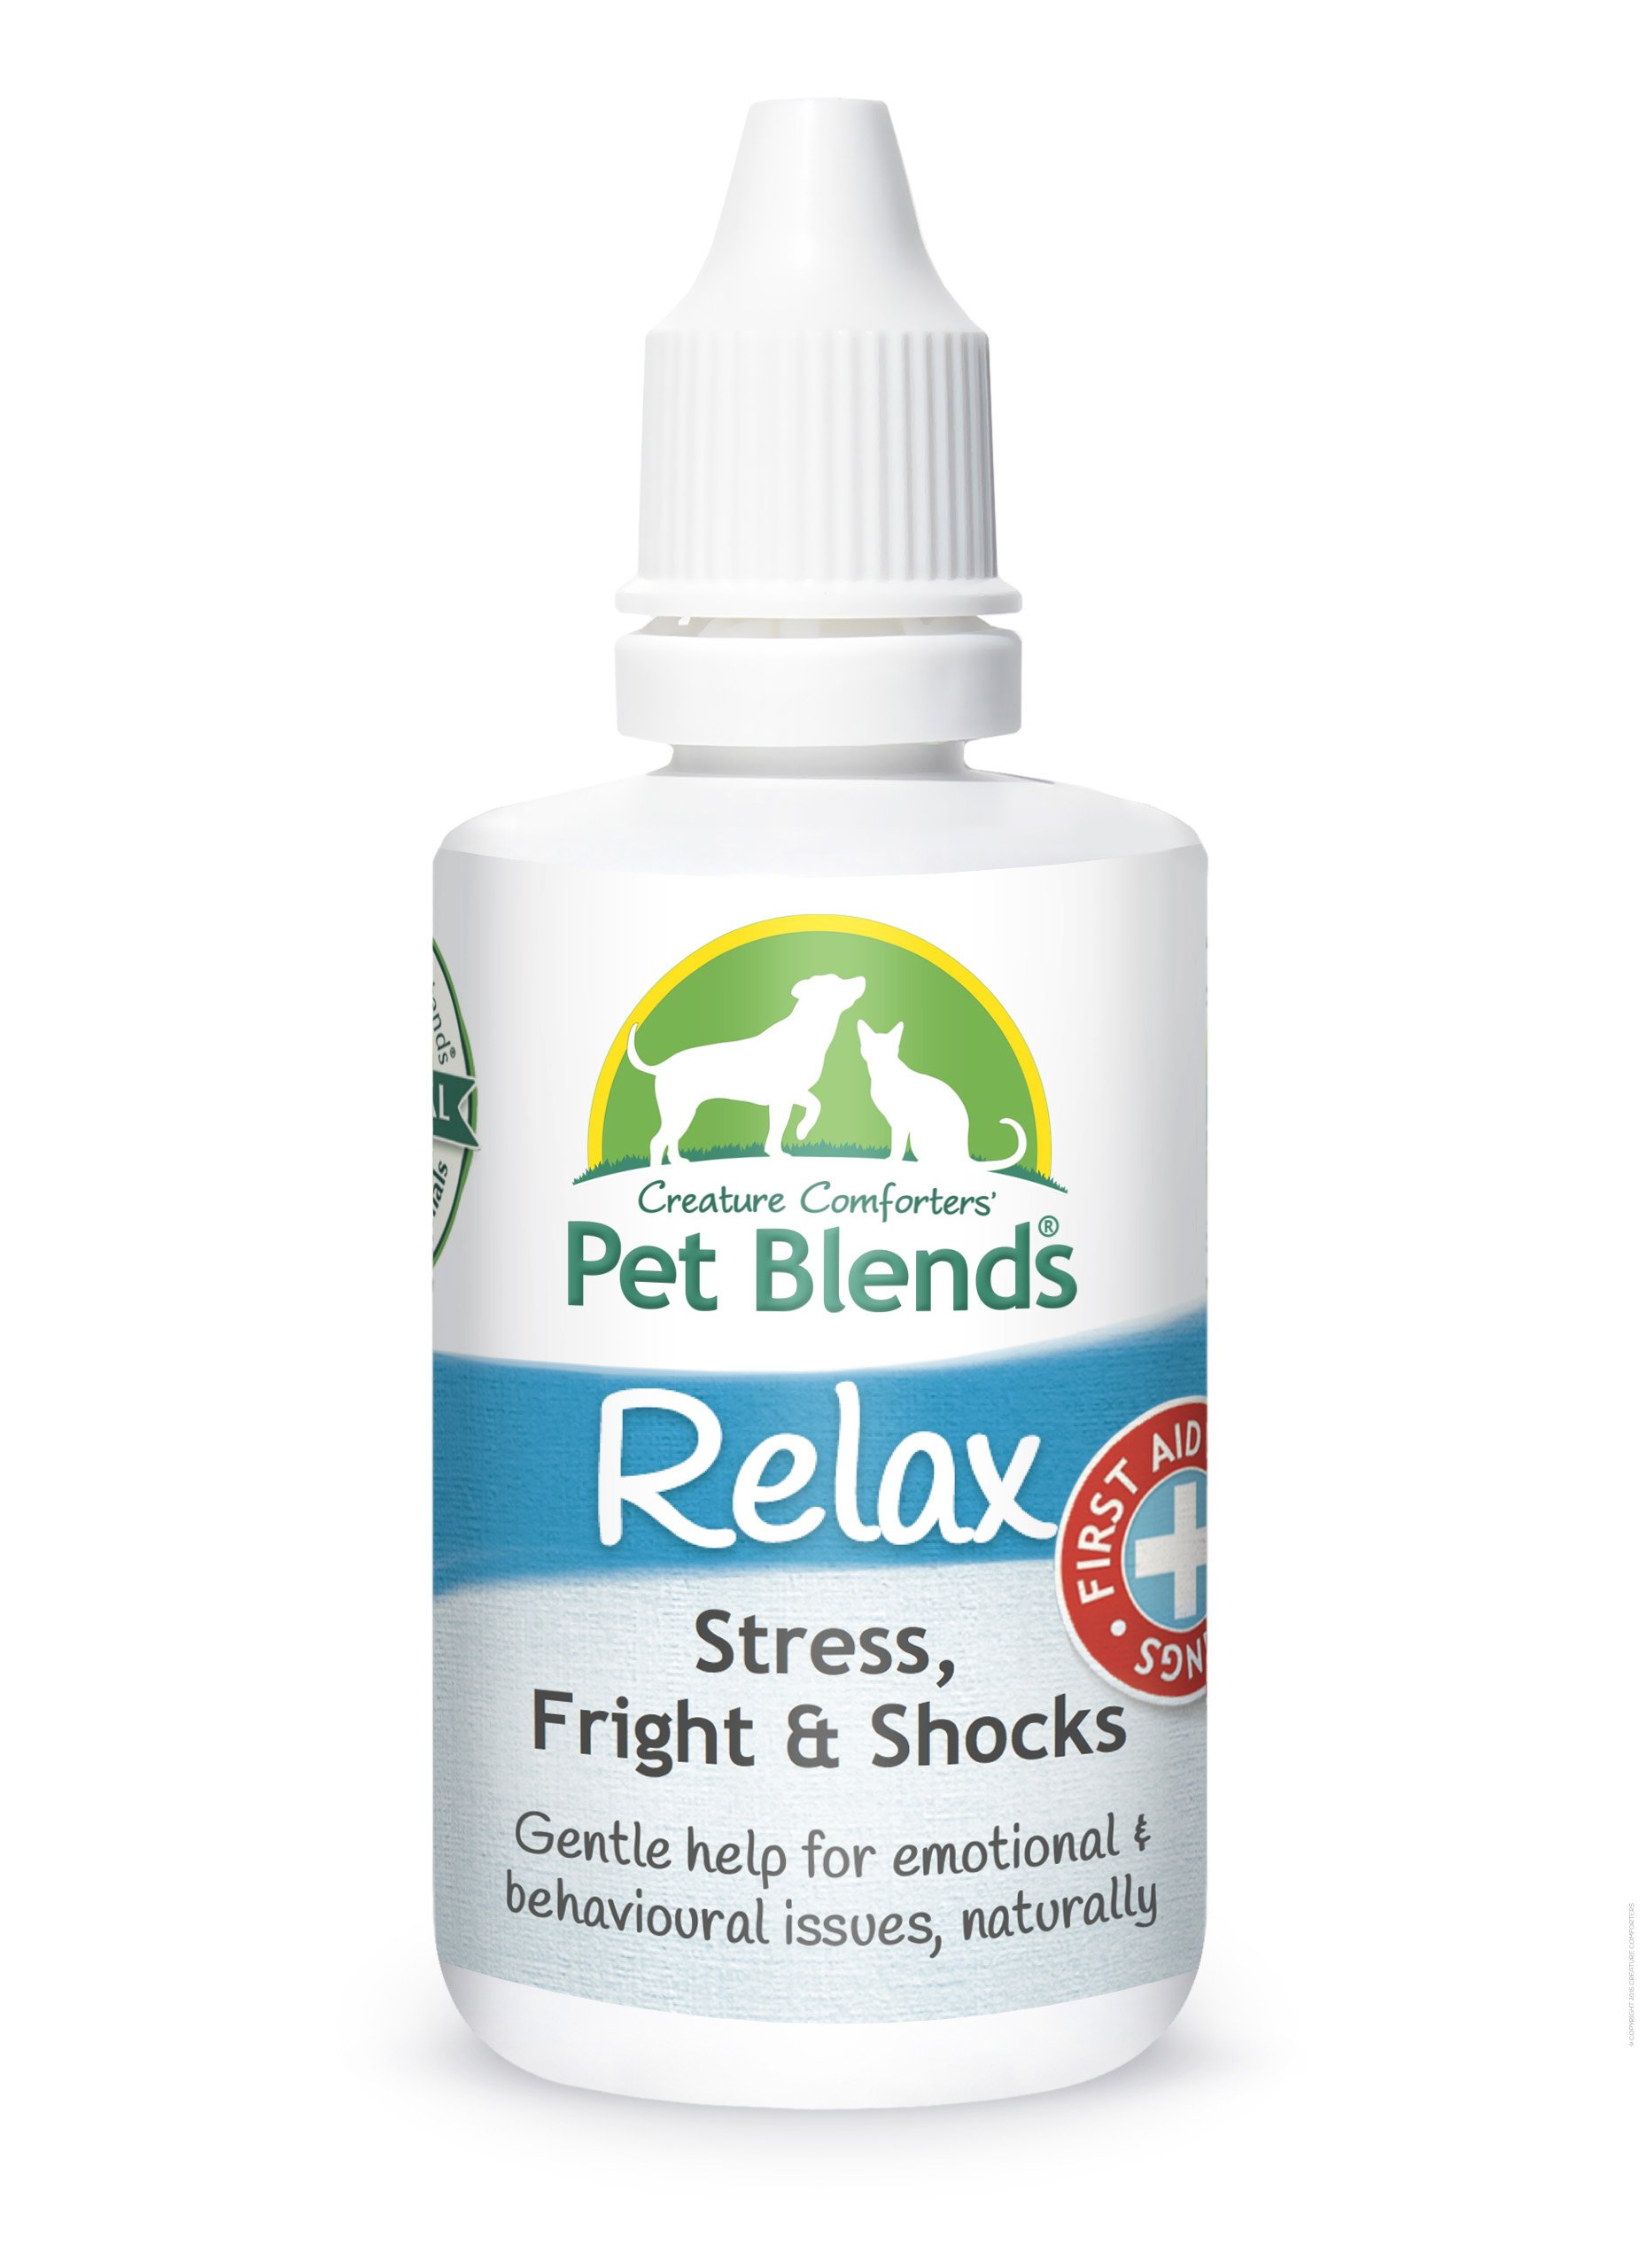 Pet Remedy for Stress, Anxiety, Firework Fear and Trauma. To Naturally Calm Dogs Cats and Horses. The Original Relax Pet Blends Flower Essence 50ml